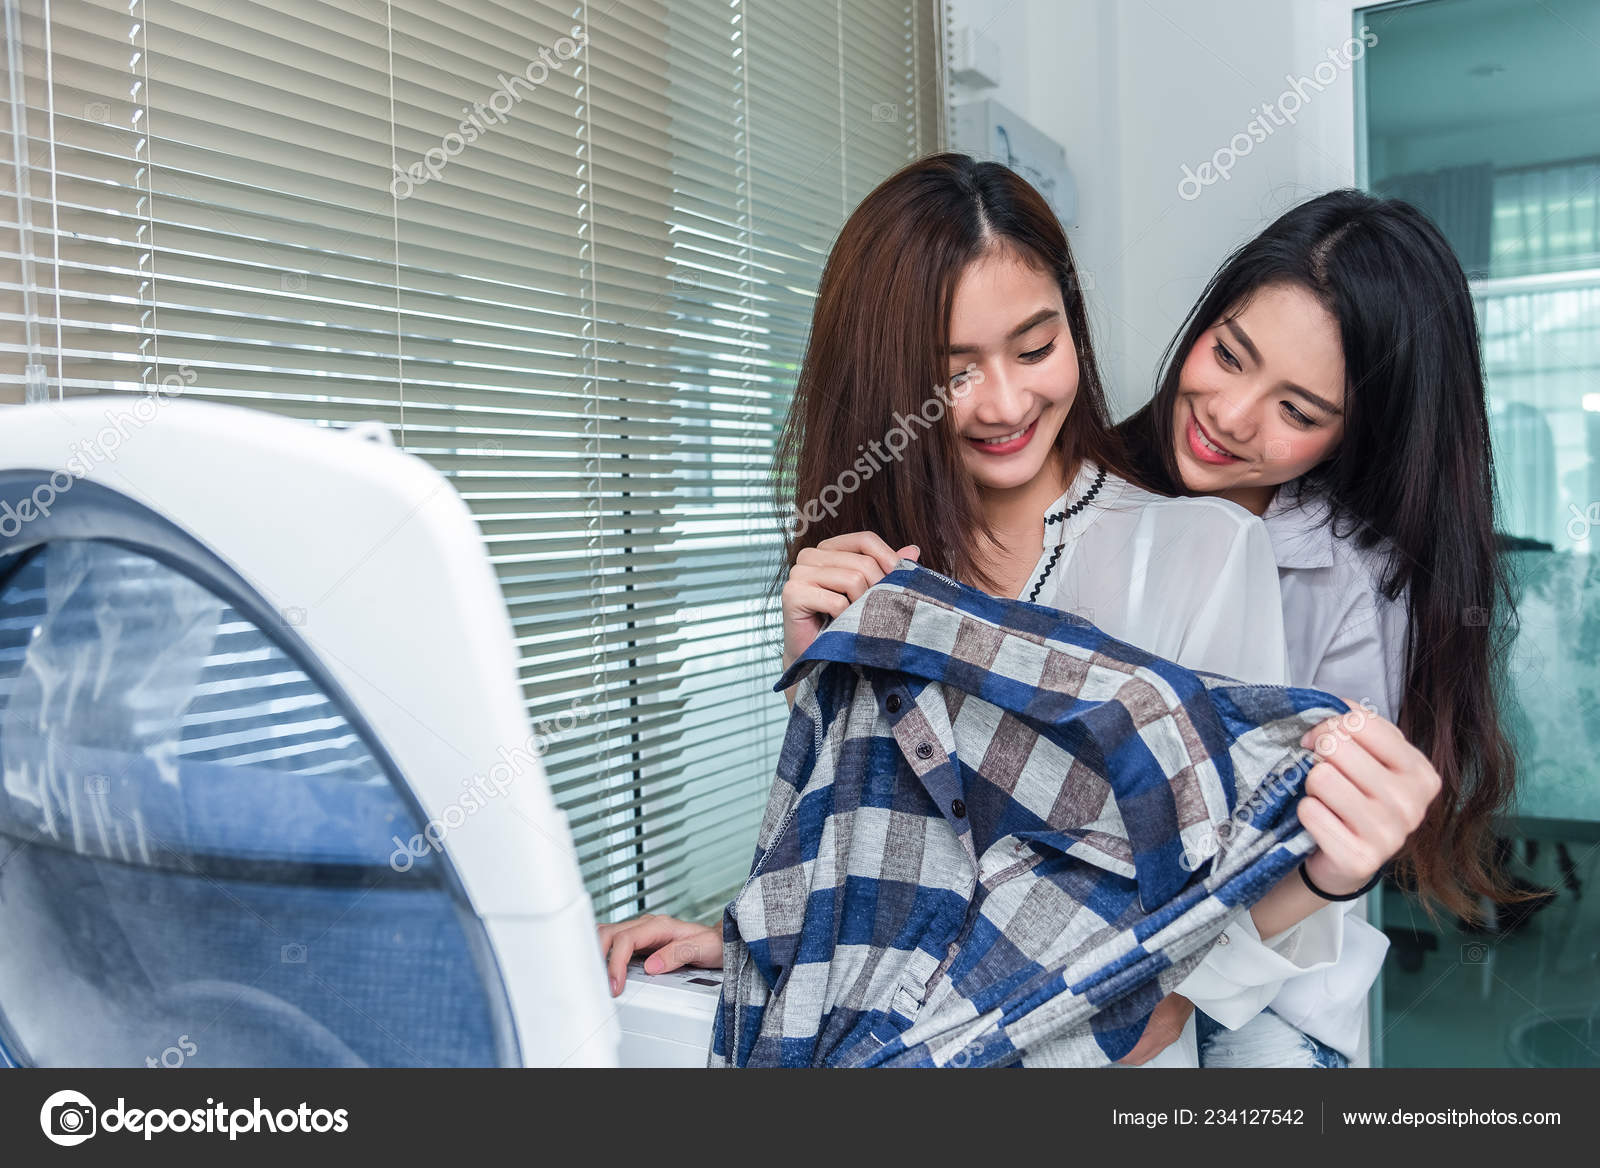 Phrase simply lesbian girls in the laundry room